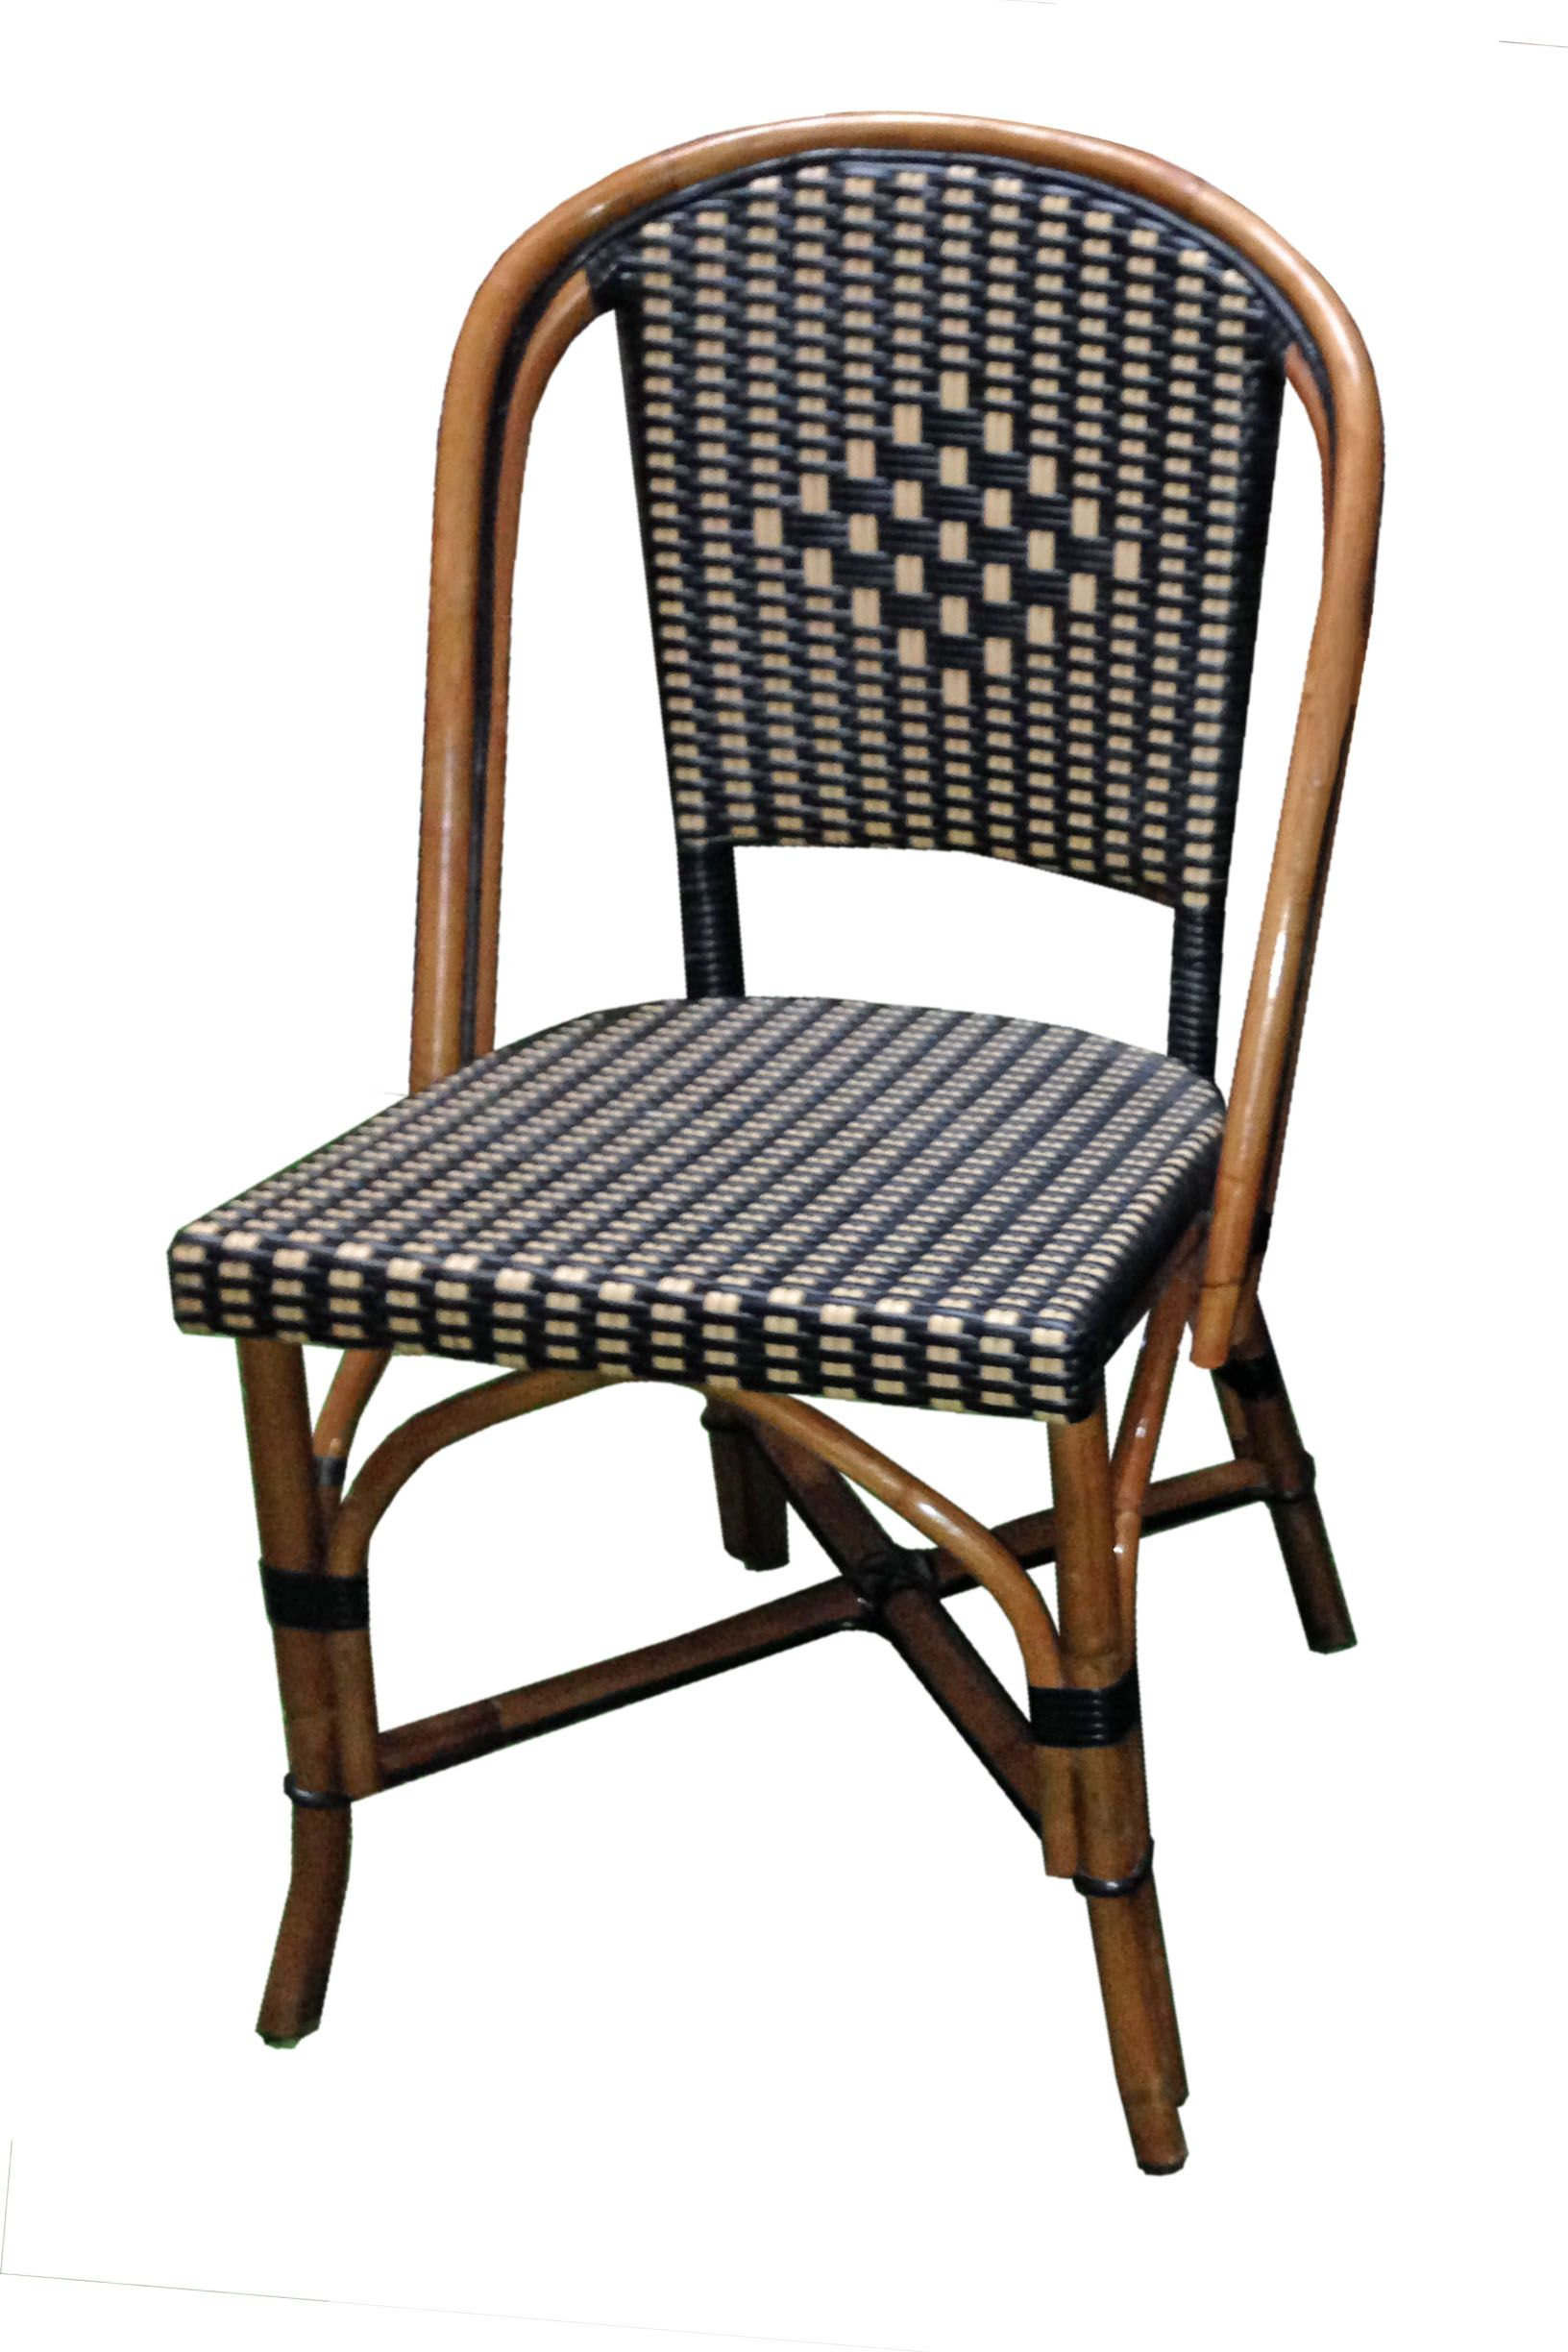 FRENCH BISTRO SIDE CHAIR, HK 81, WEAVE: L1H2 DIAMOND CENTERED, COLORS